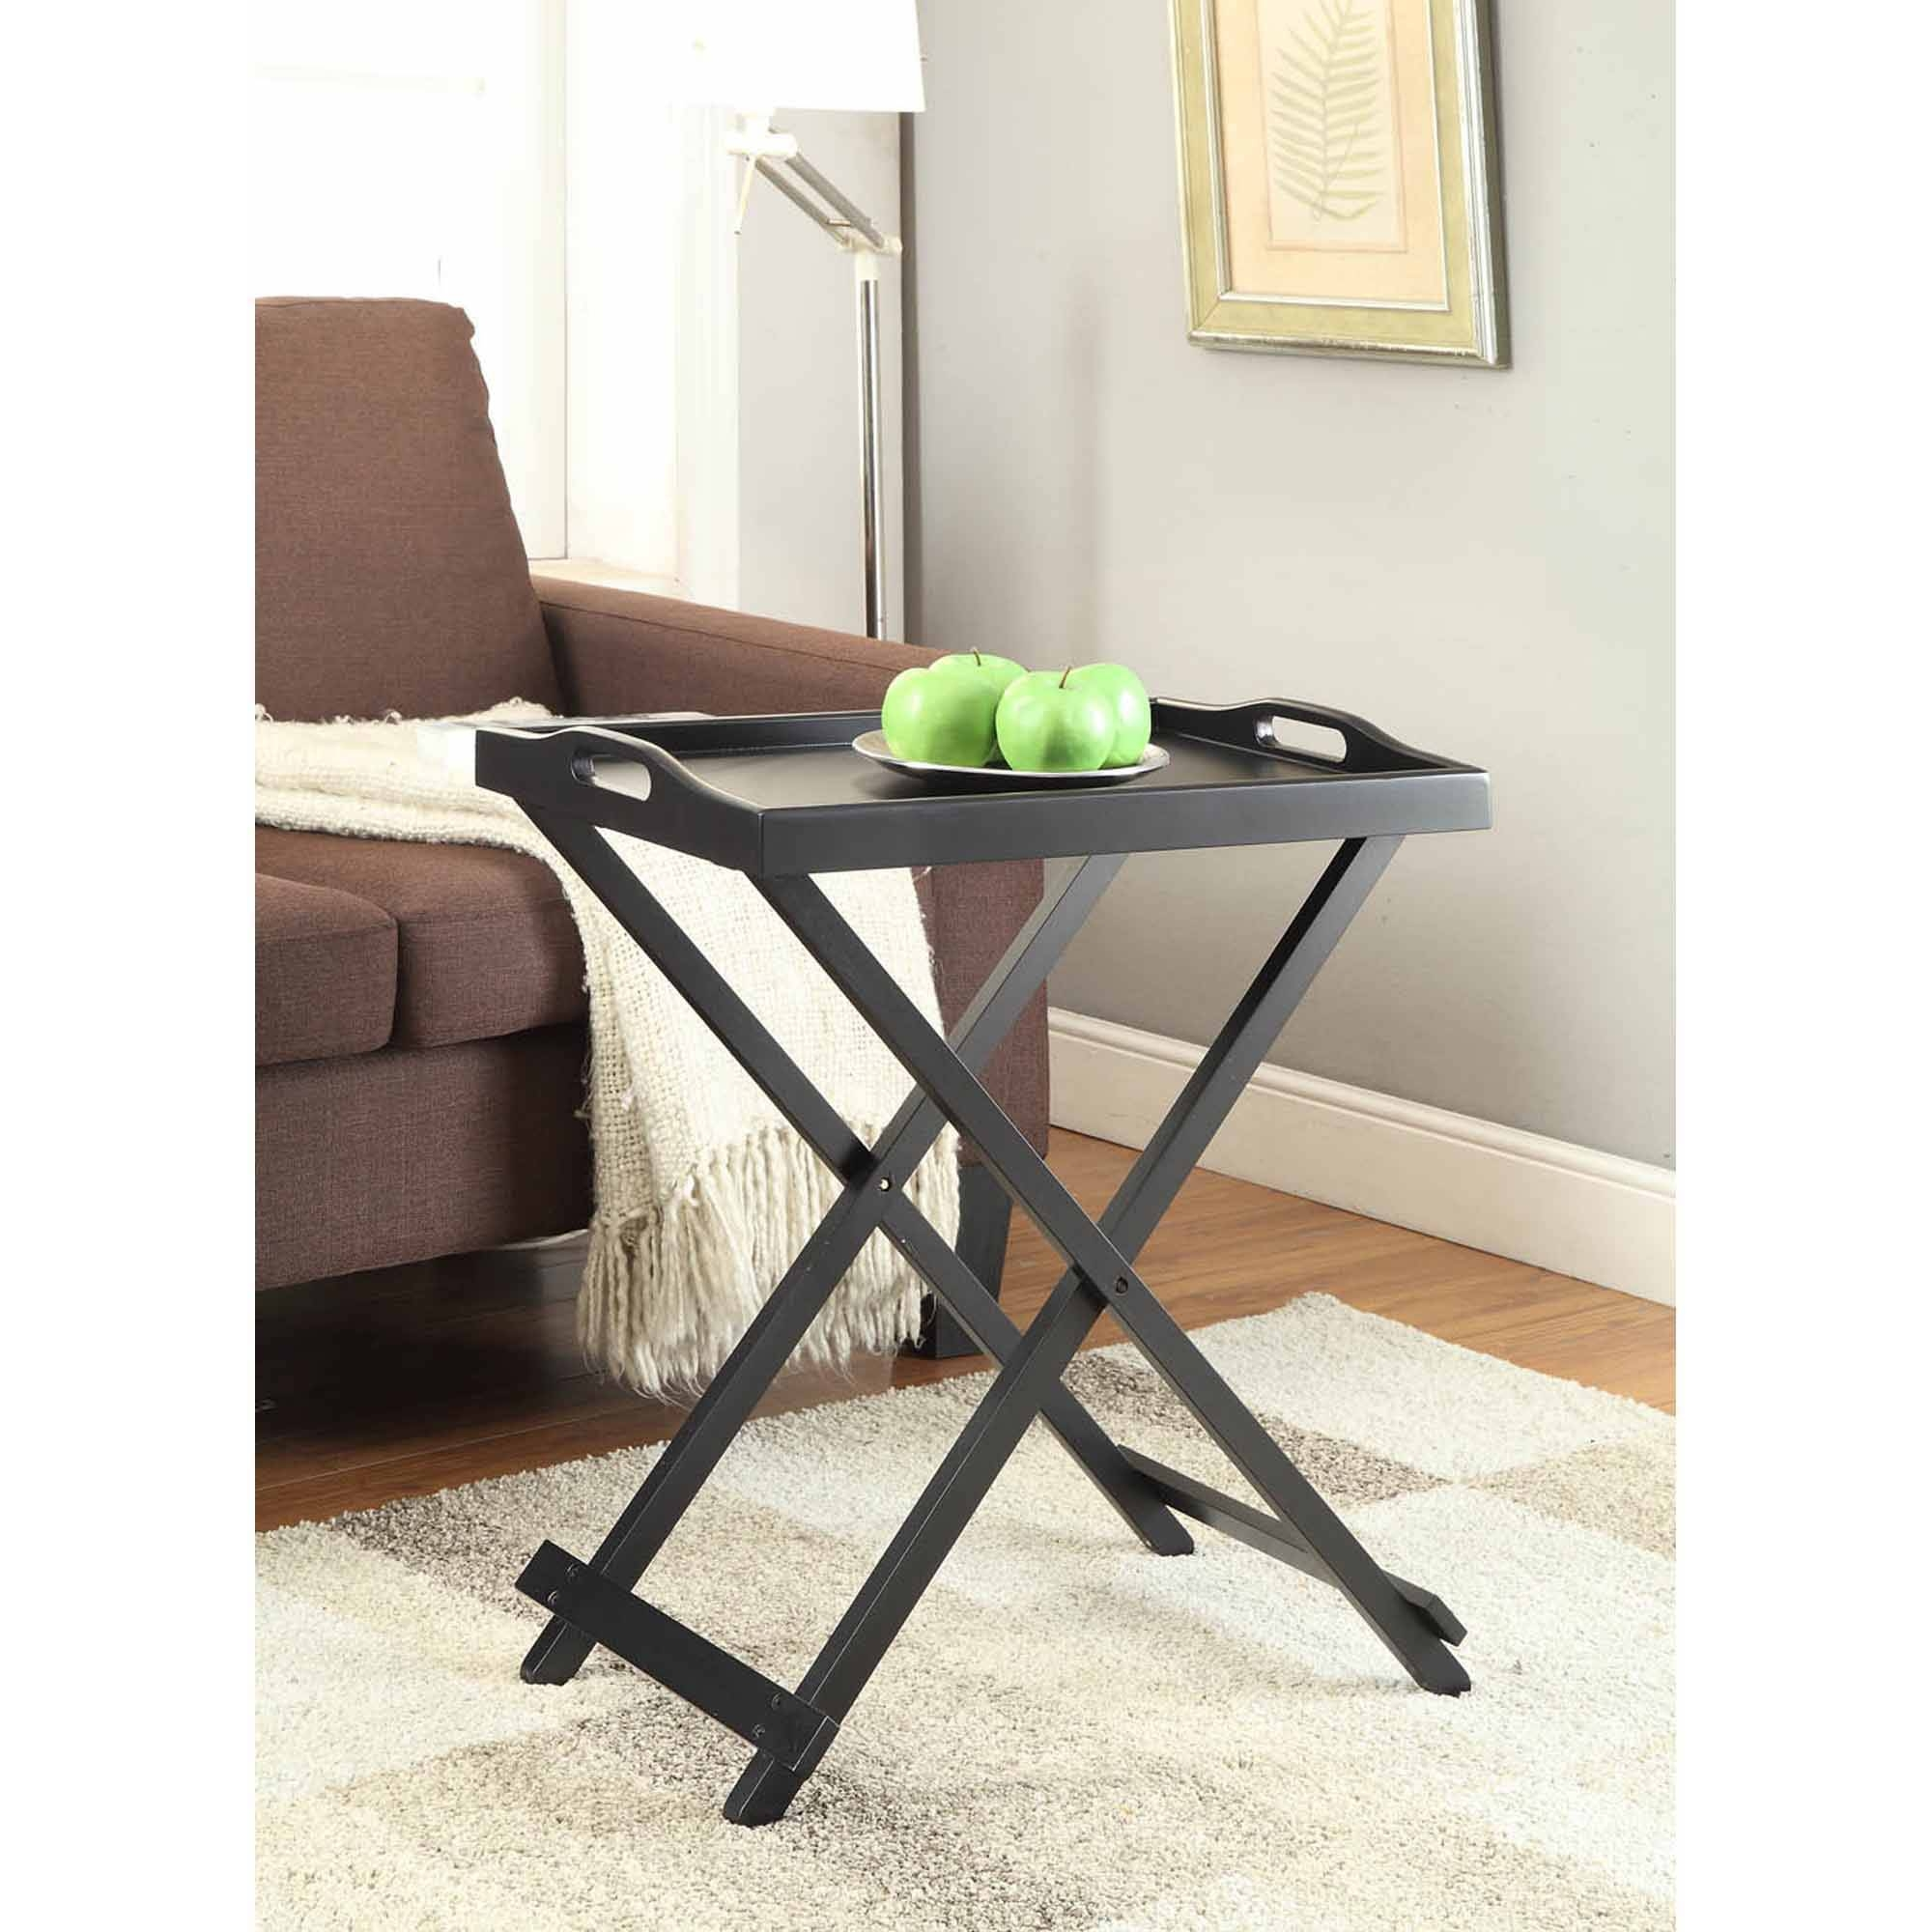 Mainstays Personal Table, Black - Walmart inside Sofa Snack Tray Table (Image 9 of 30)